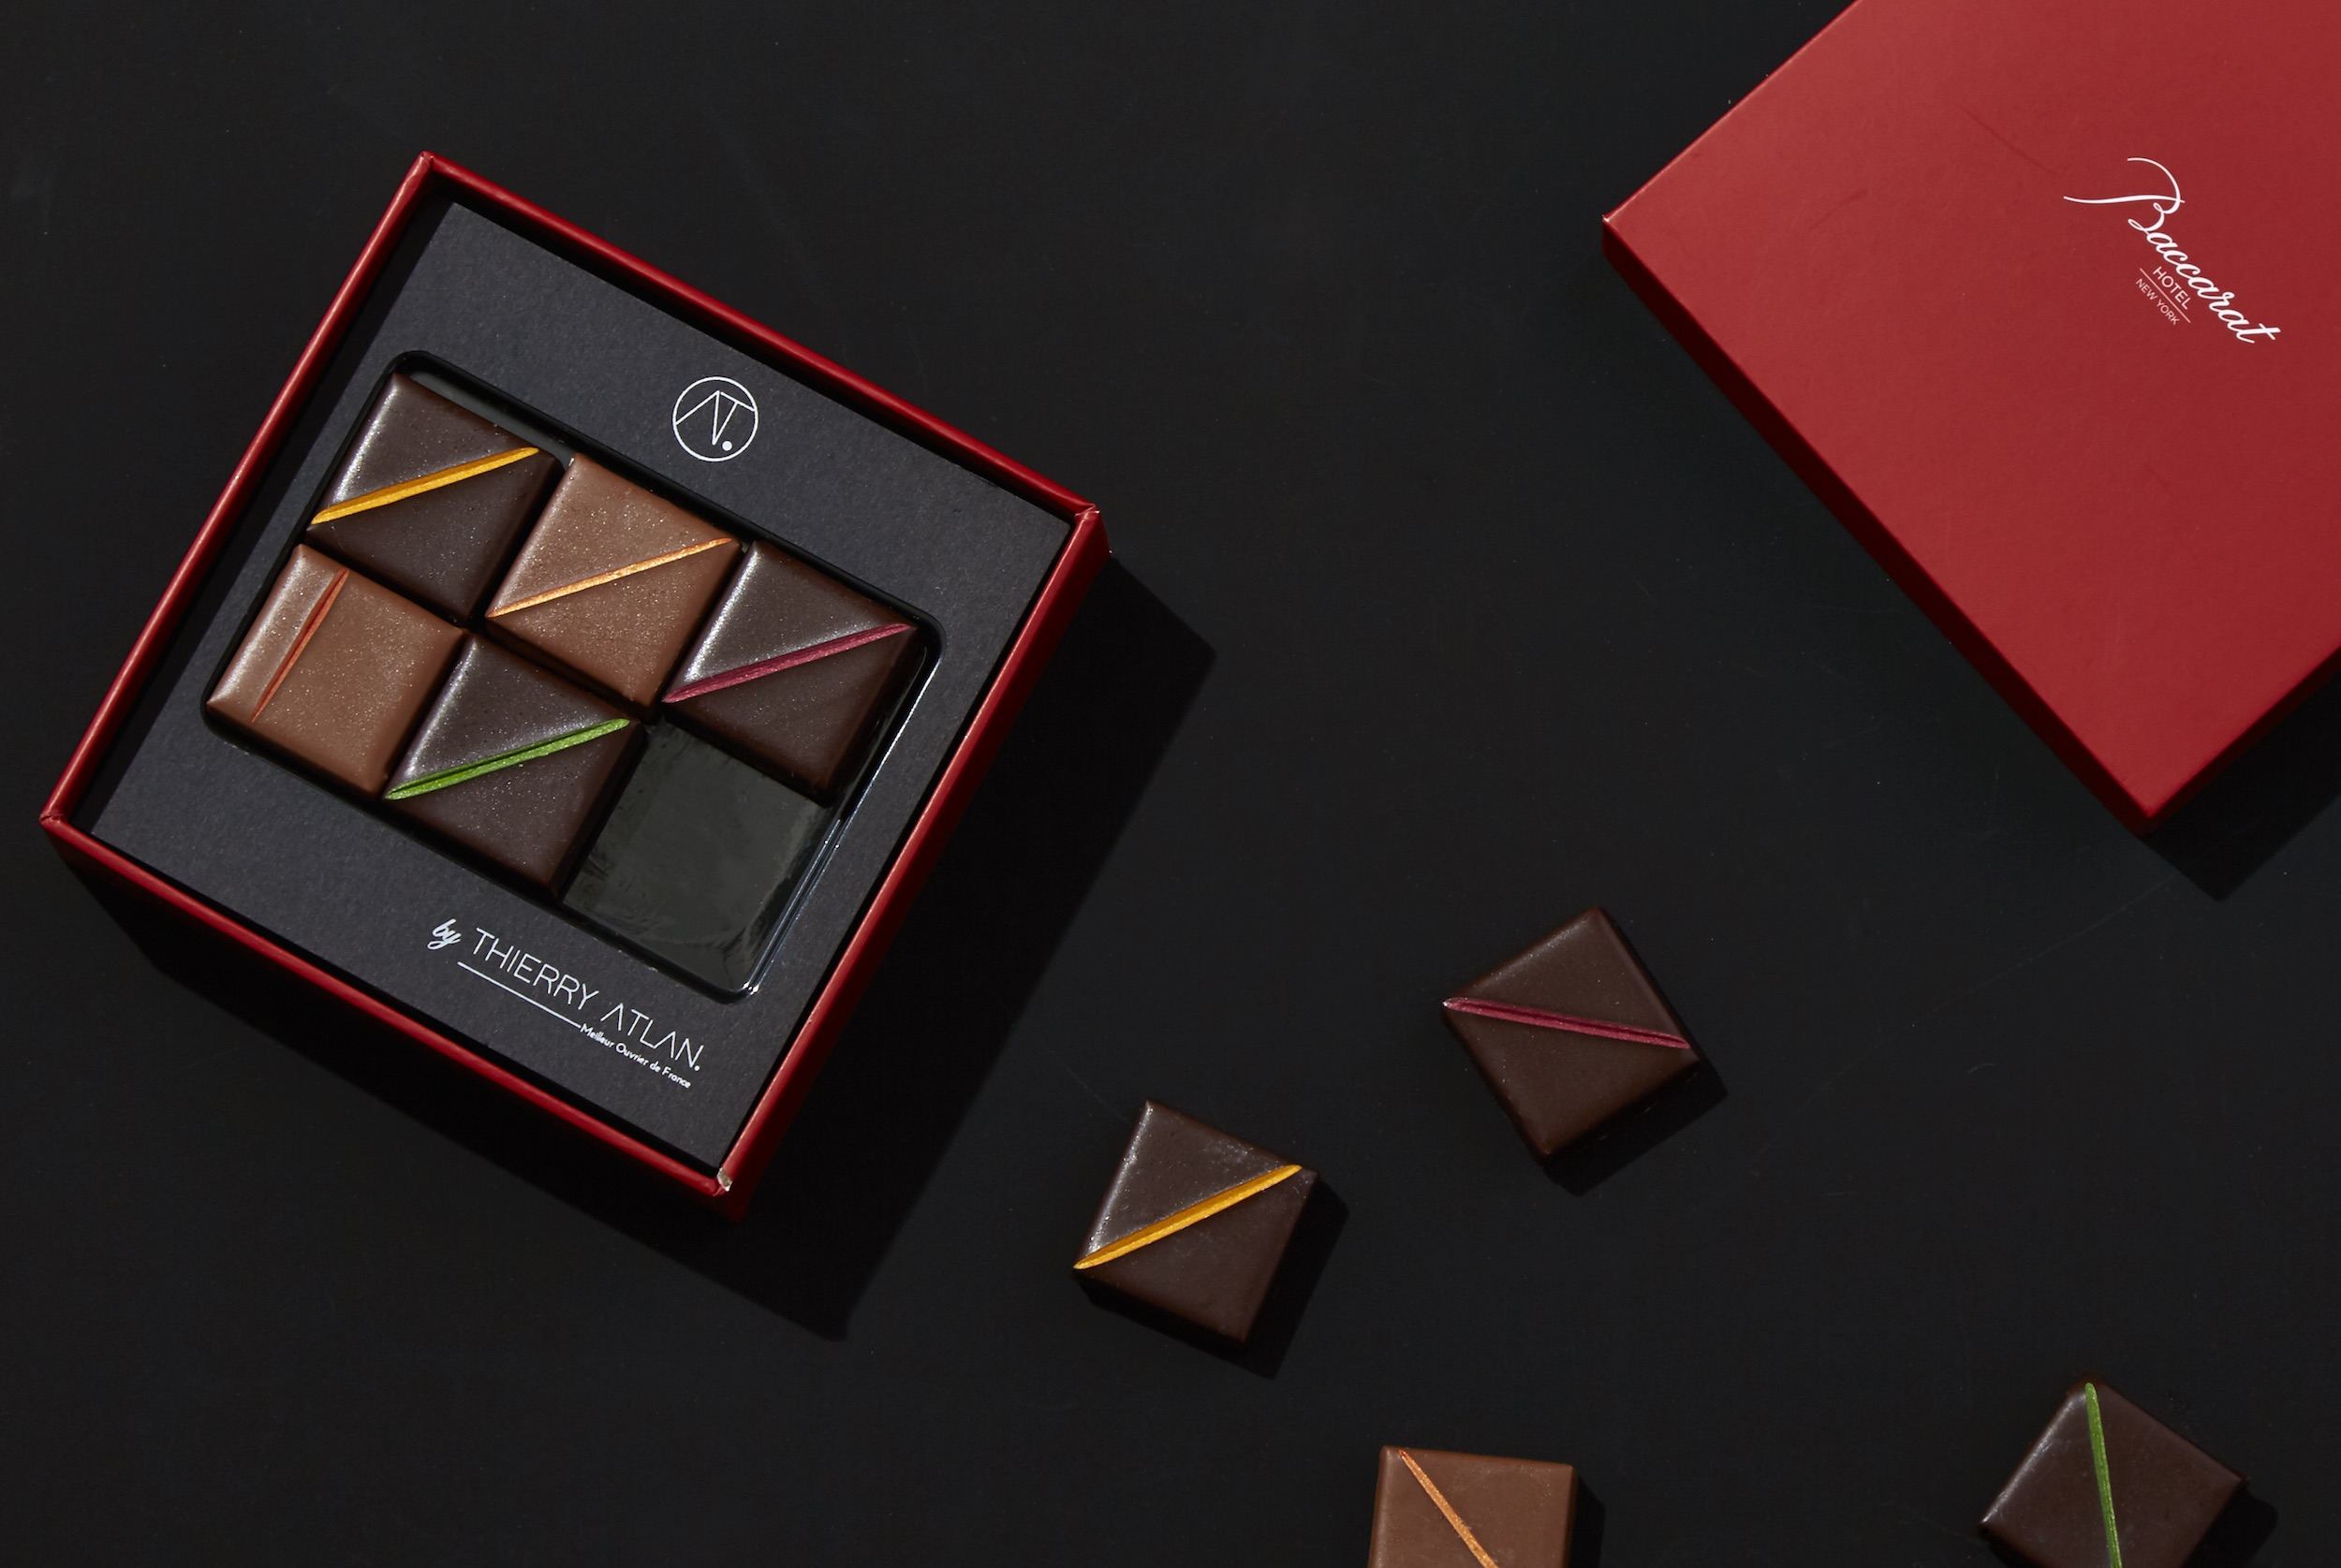 /media/082818_Baccarat_box_with_chocolate.jpg